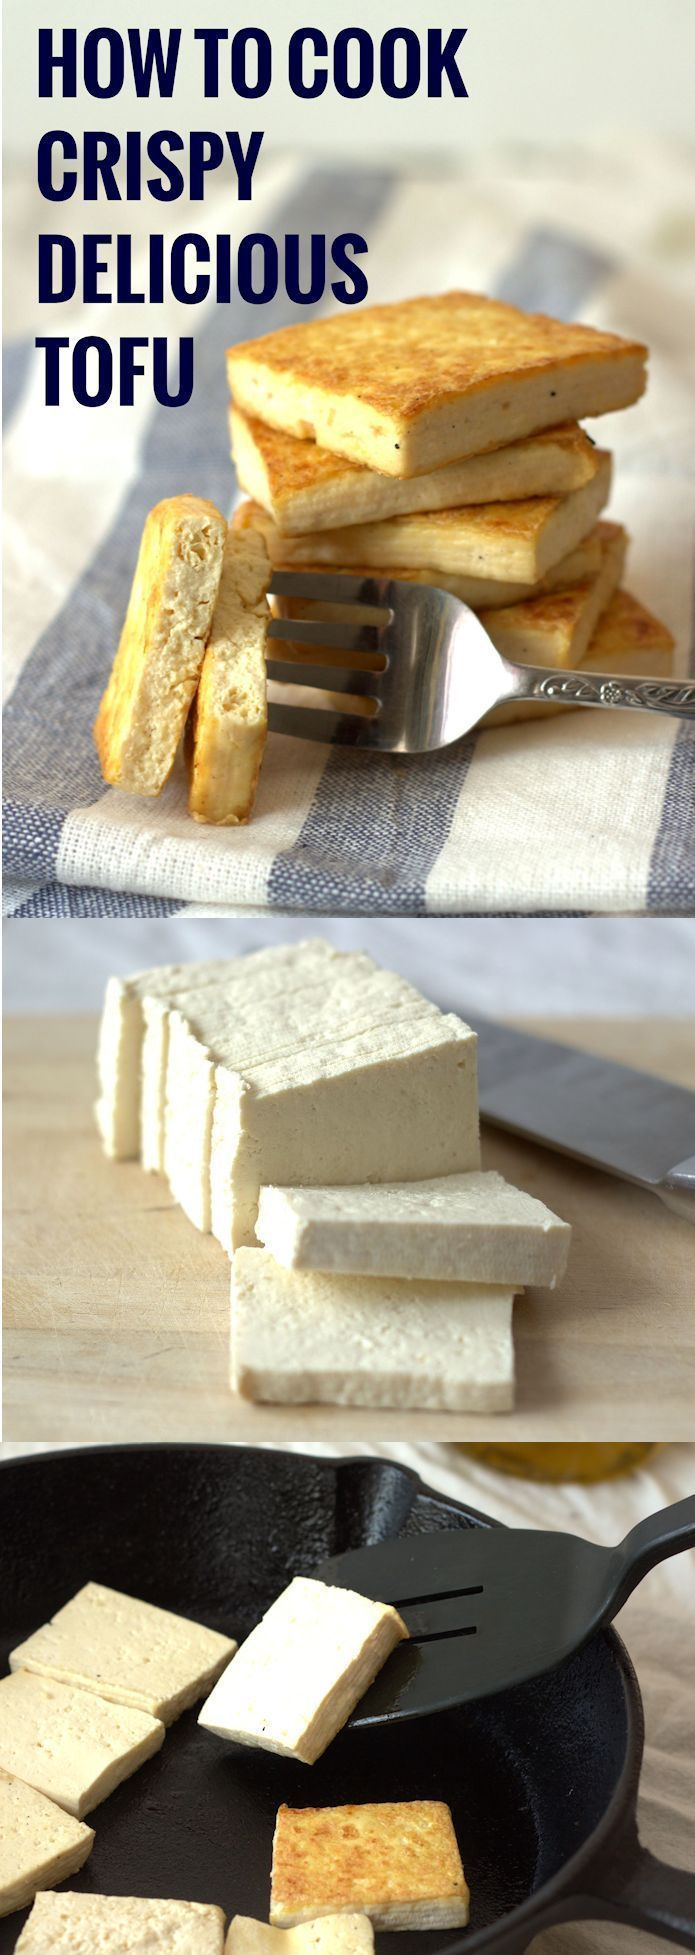 This is your #5 Top Pin in the Vegan Community Board in March: How to Cook Crispy, Delicious Tofu: A Step by Step Tutorial - 313 re-pins!!! (You voted with yor re-pins). Congratulations @connoisseurus ! Vegan Community Board http://www.pinterest.com/heid